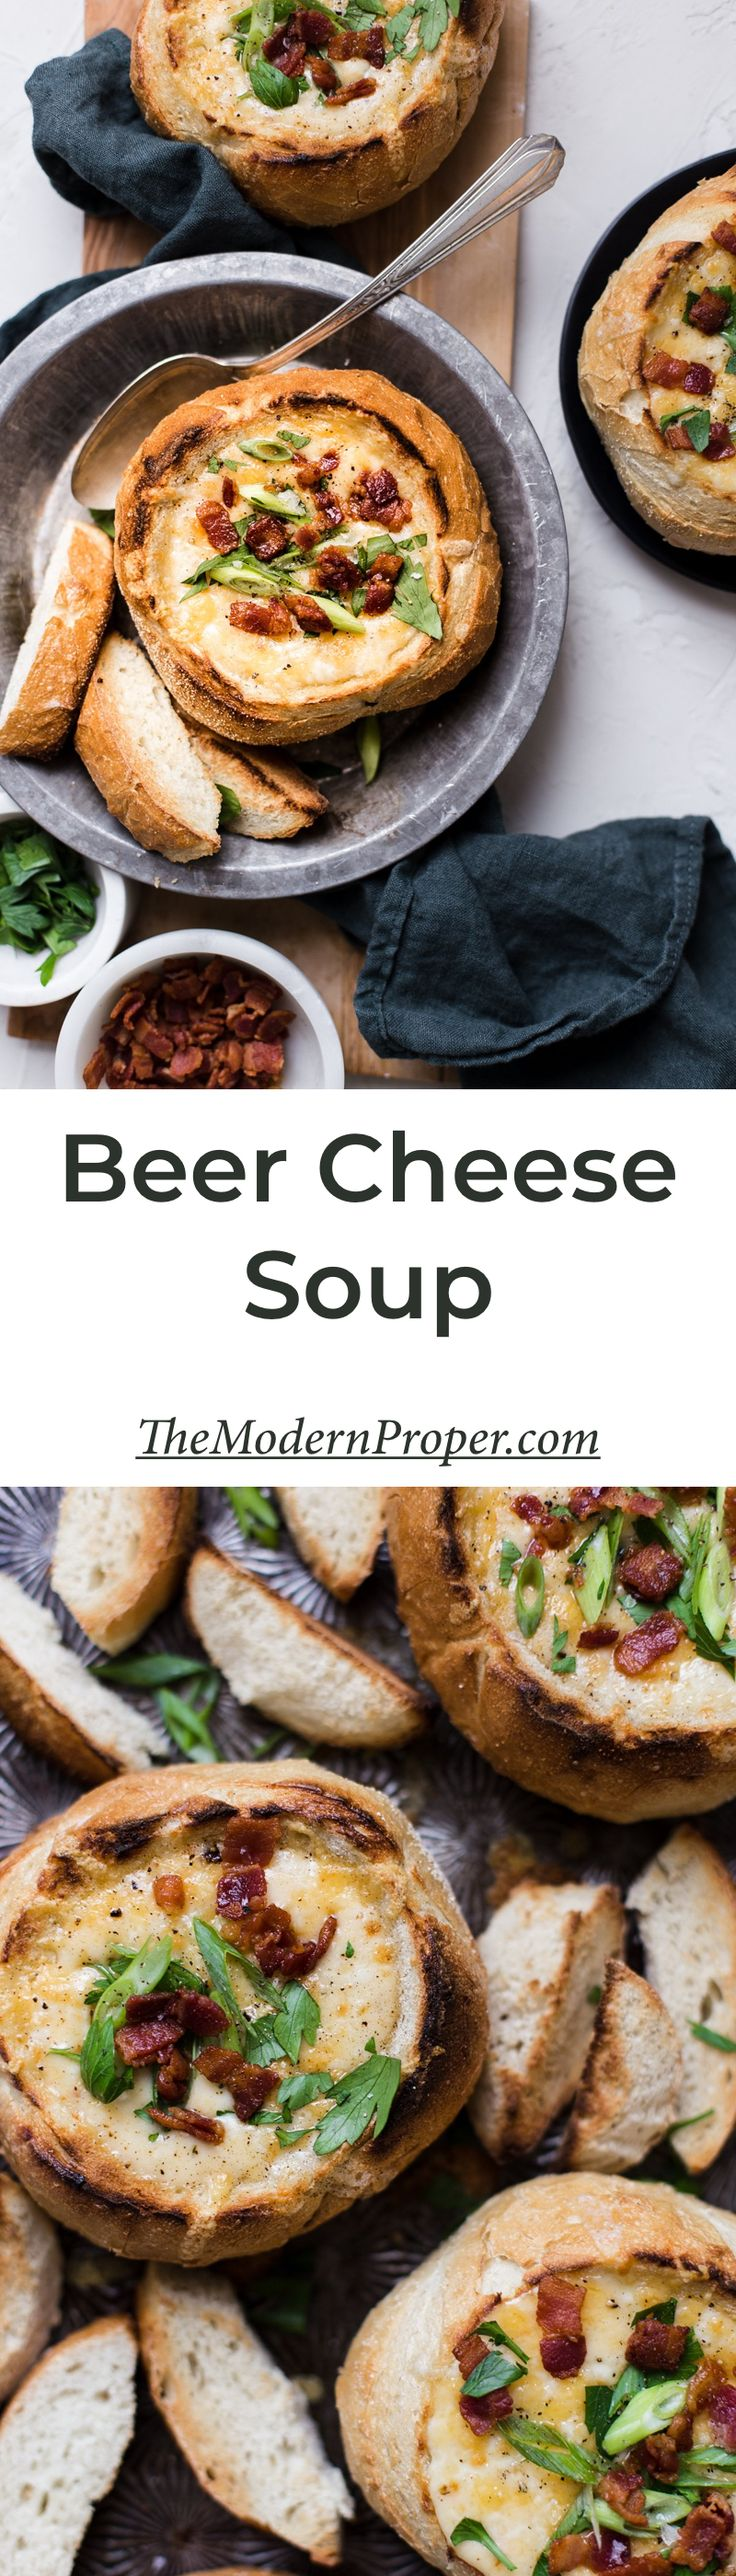 Beer Cheese Soup #dinner #soup #recipe